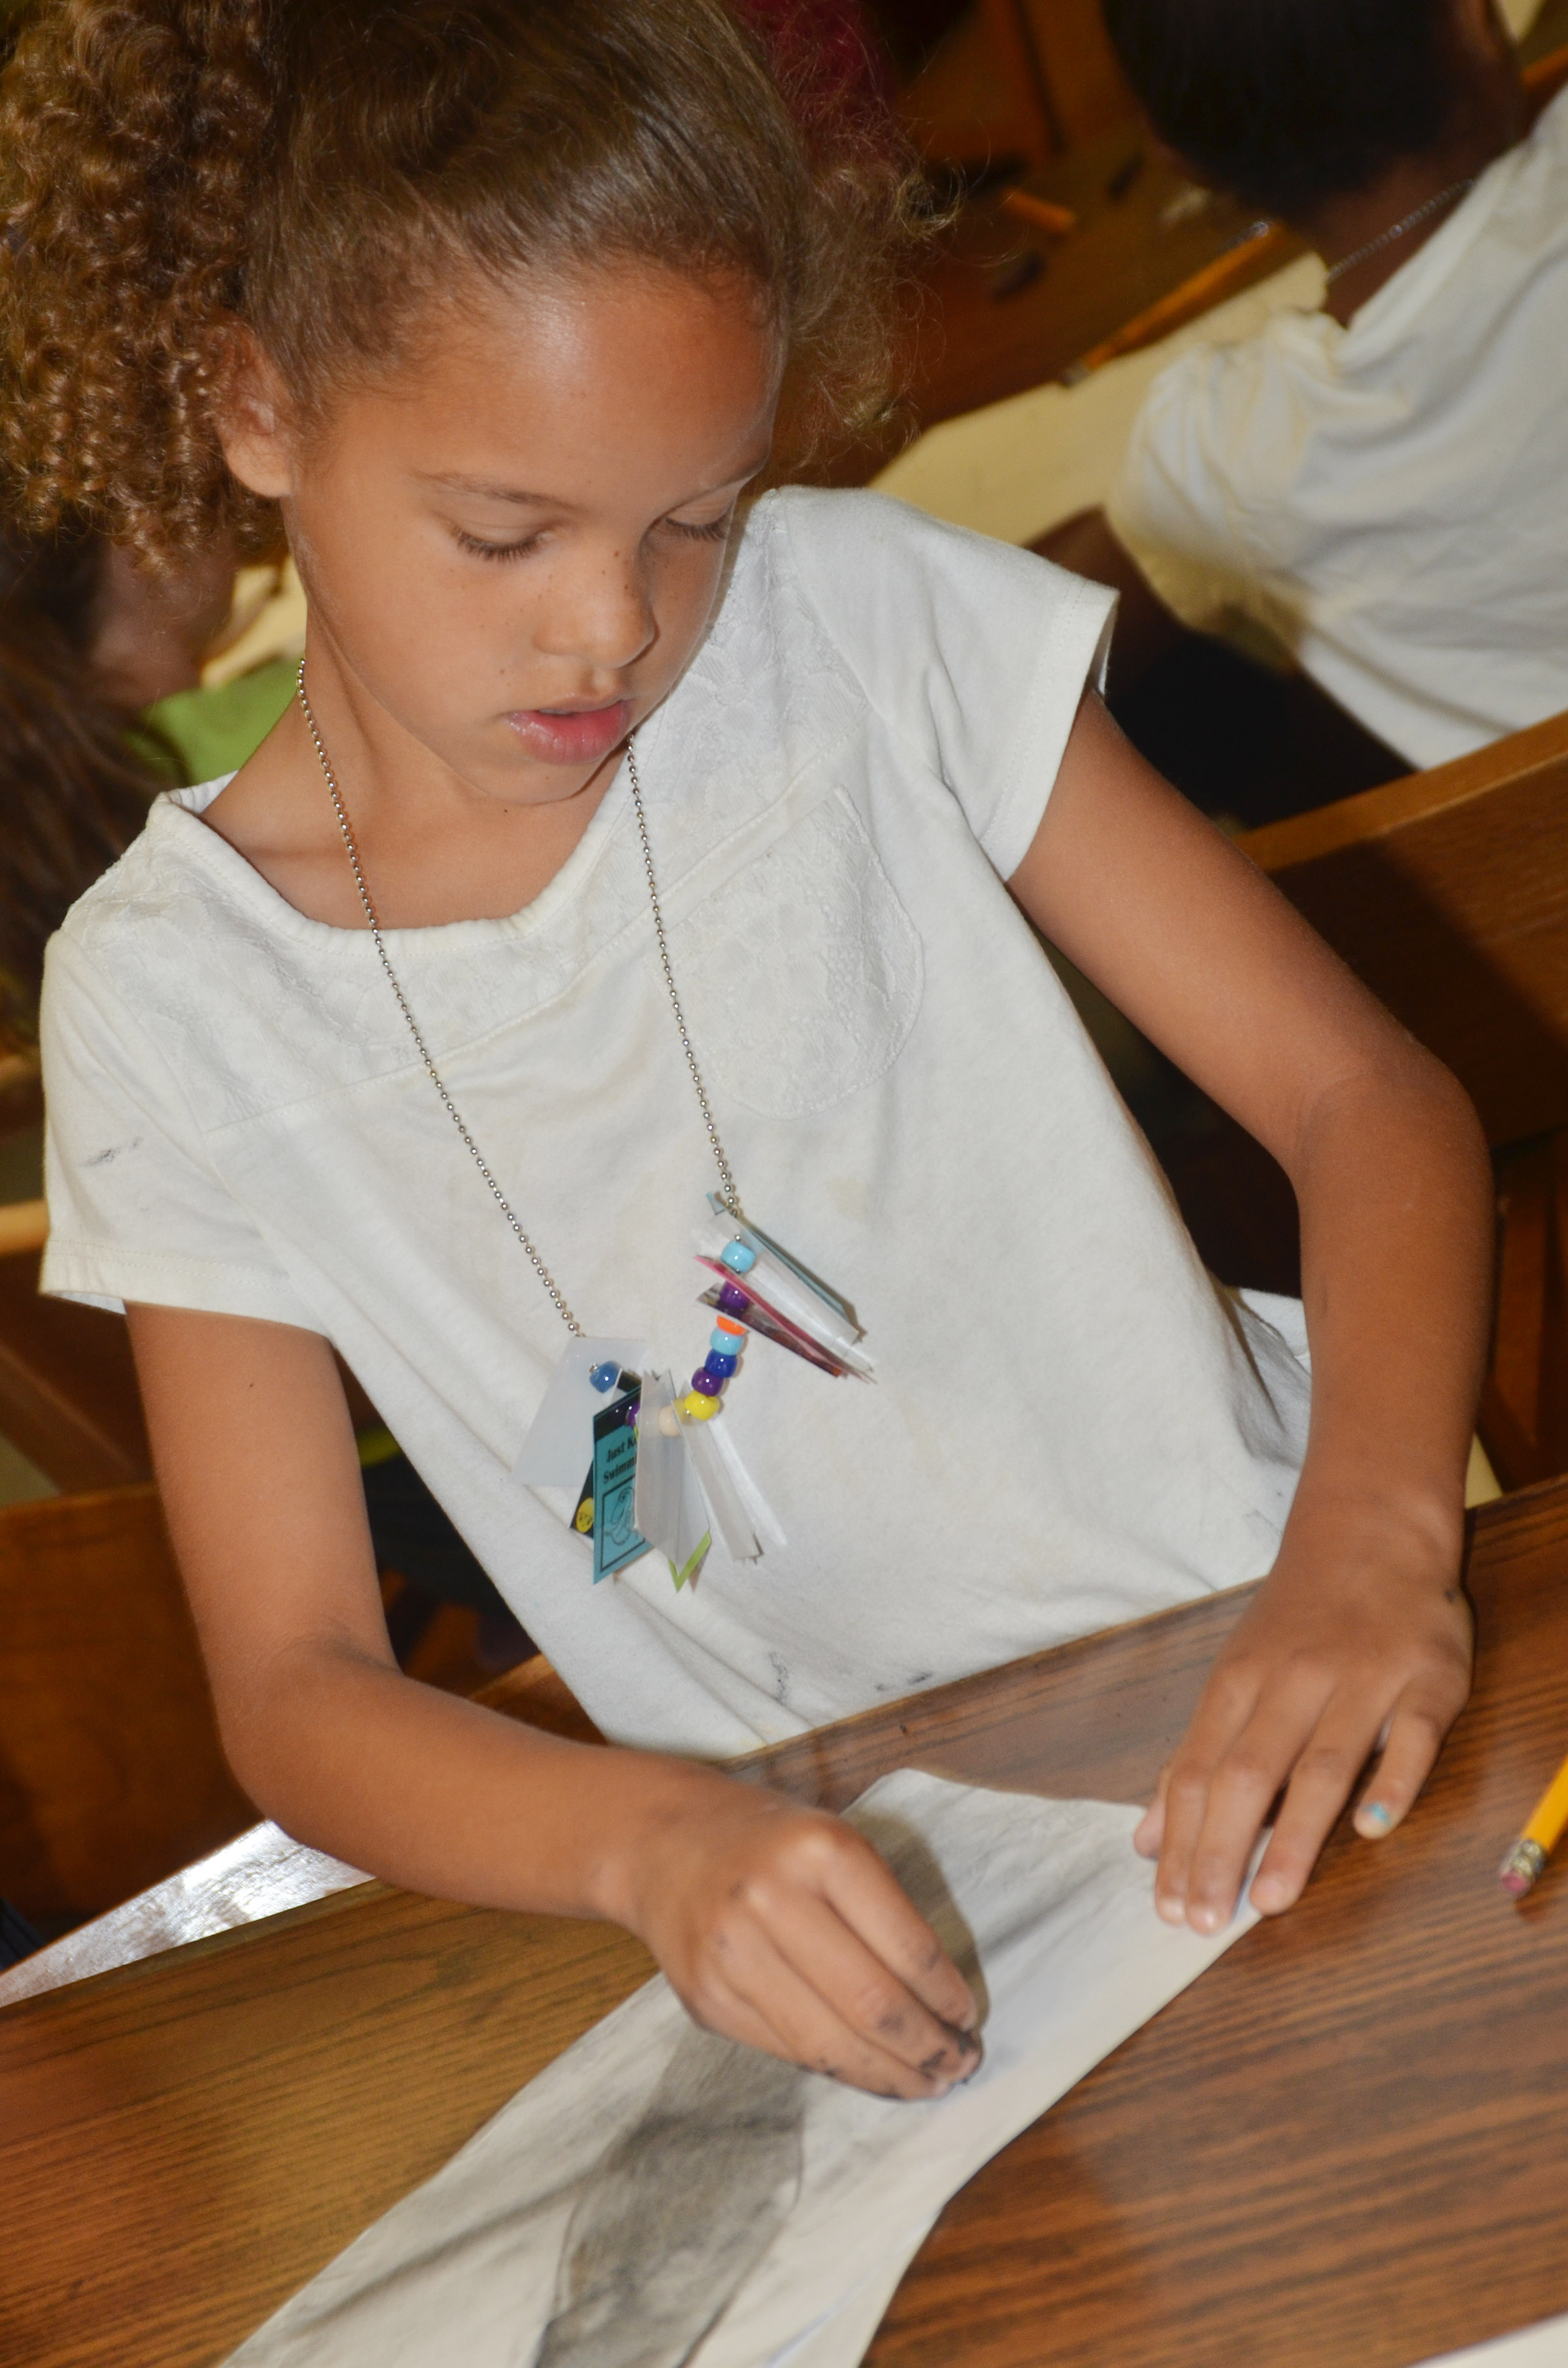 CES first-grader Keiava Thompson draws with charcoal.